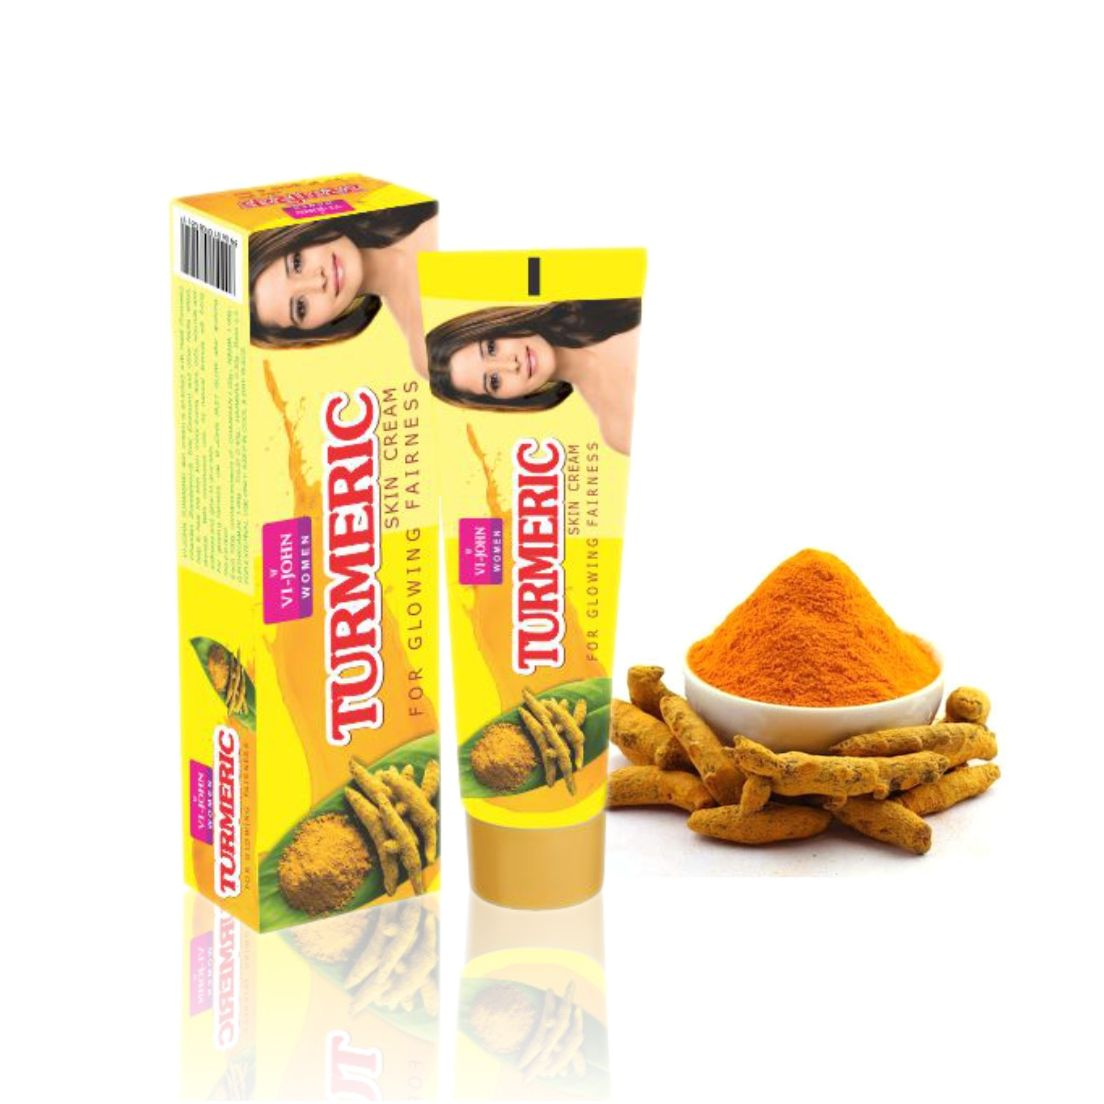 The Cream Is Composed Of Natural Ingredients Like Haldi Turmeric